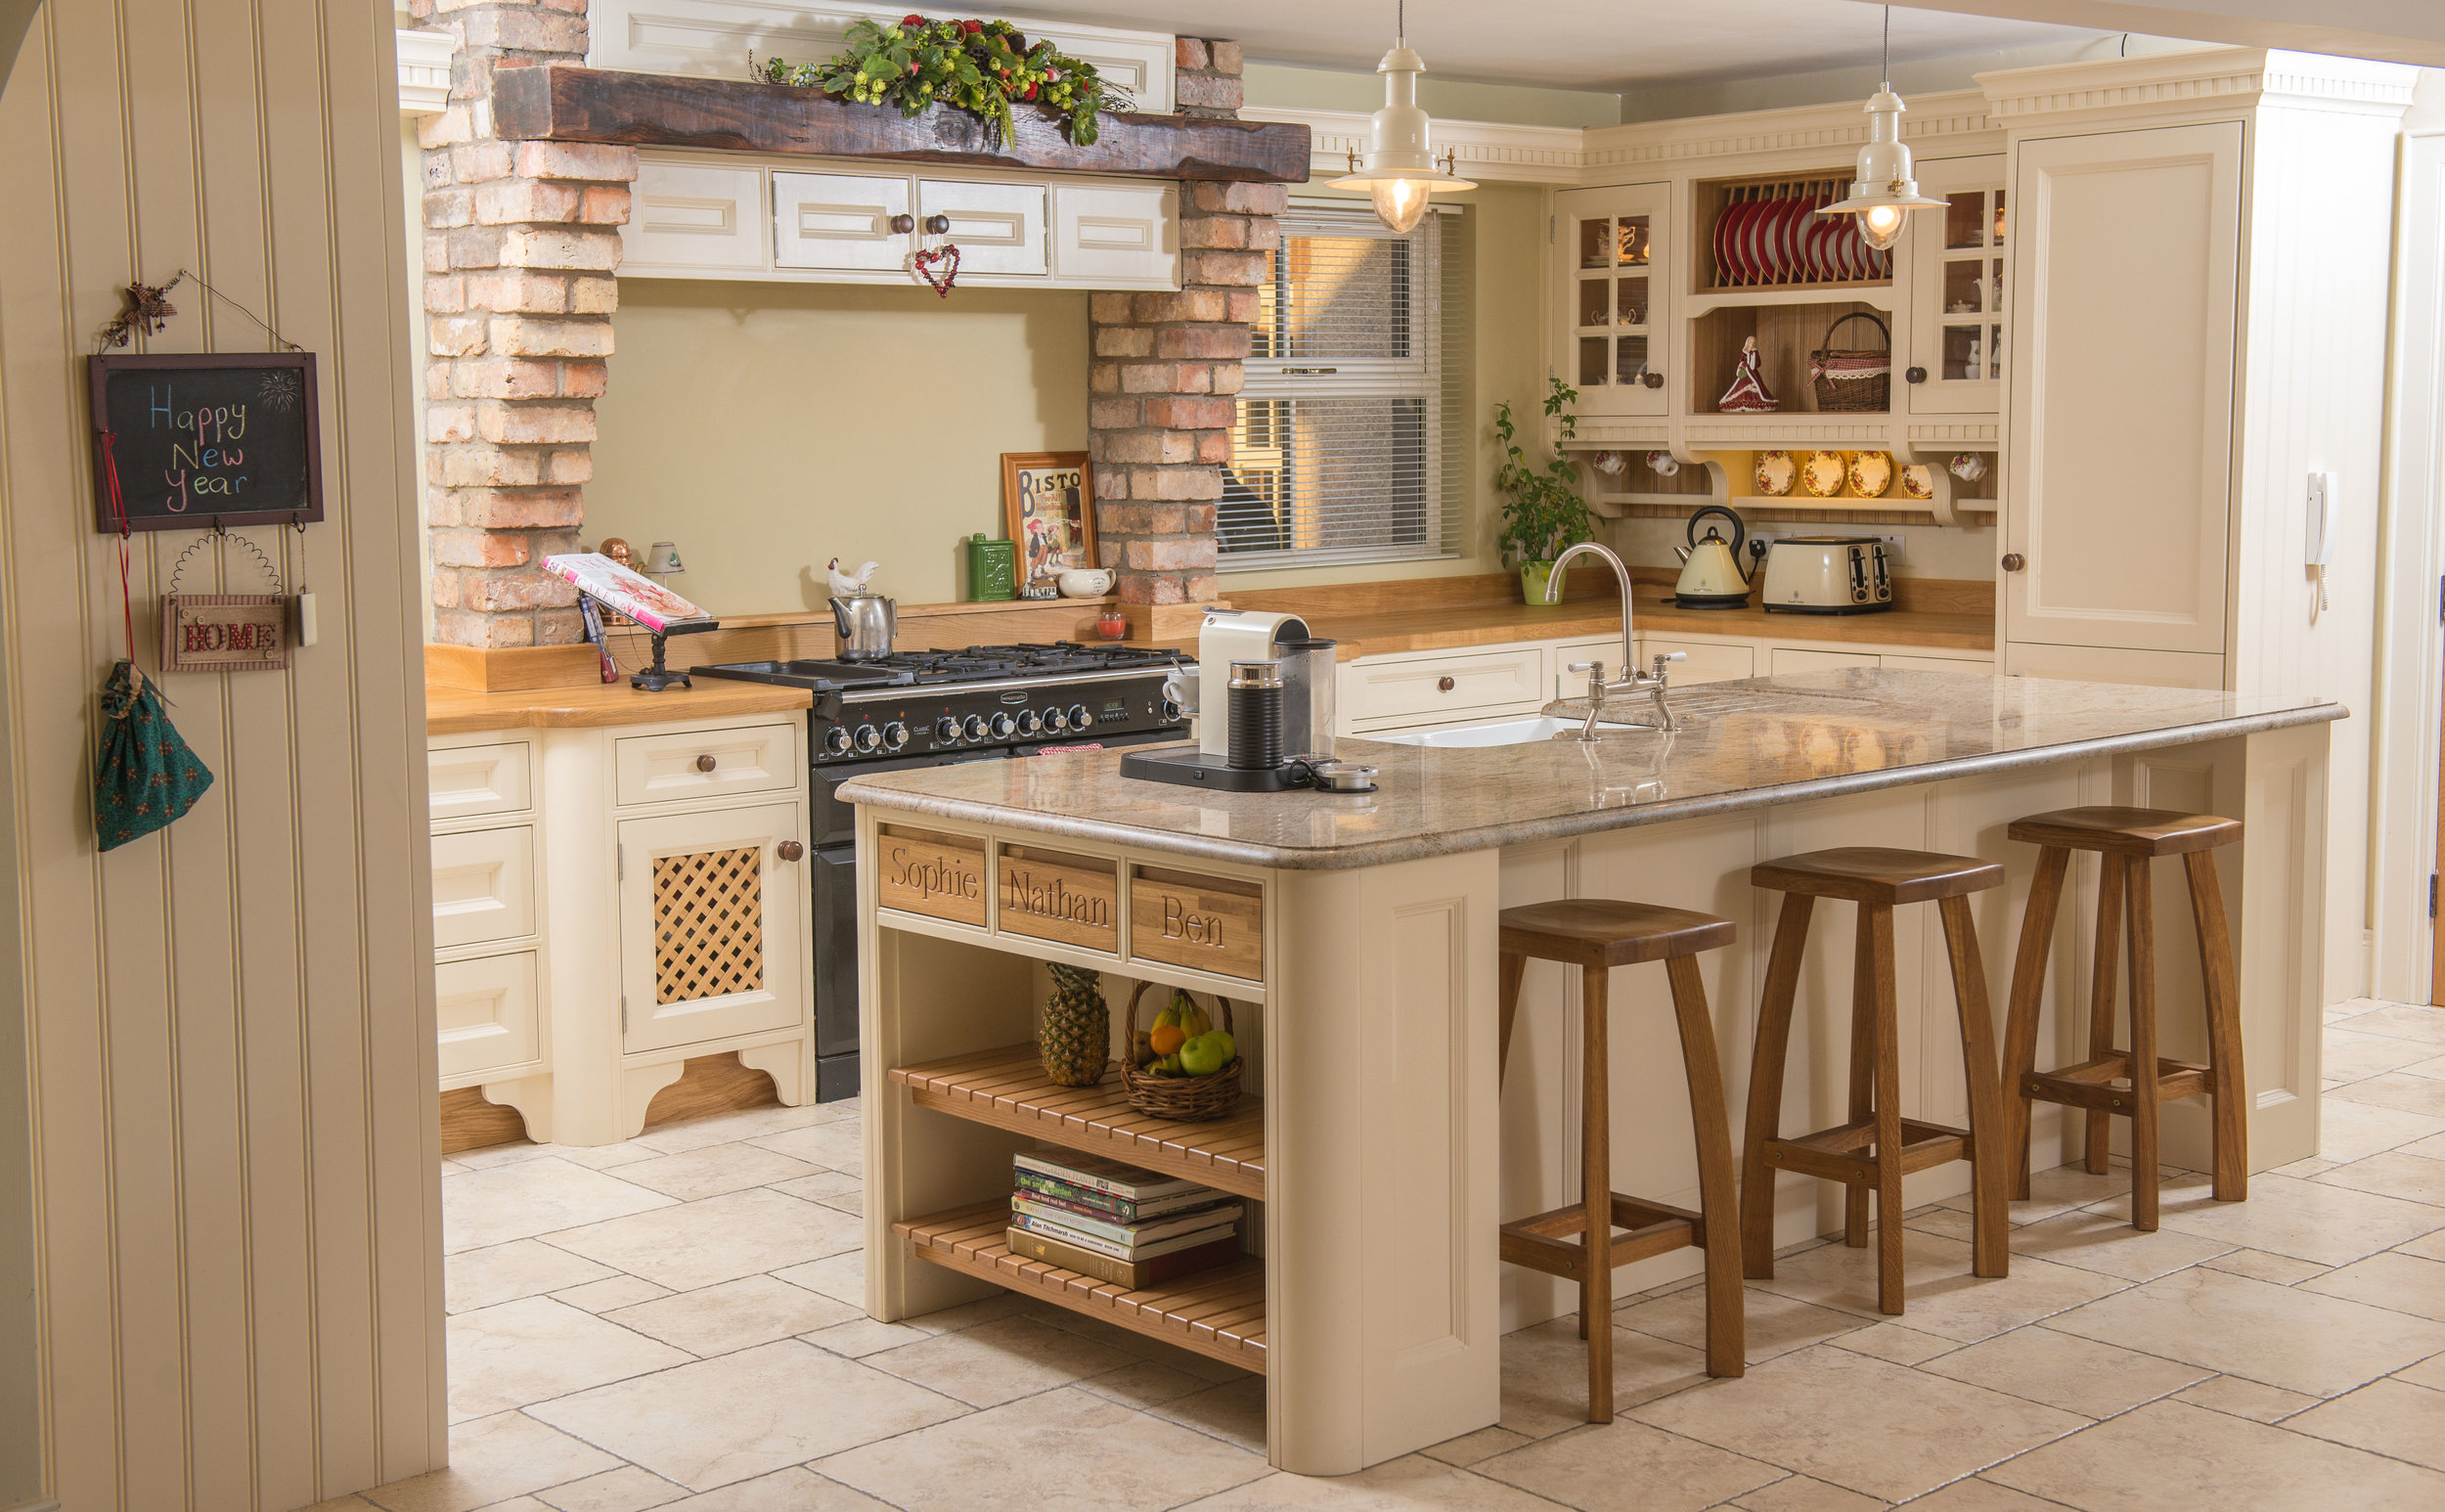 ELM -002 -Hand painted kitchen.JPG